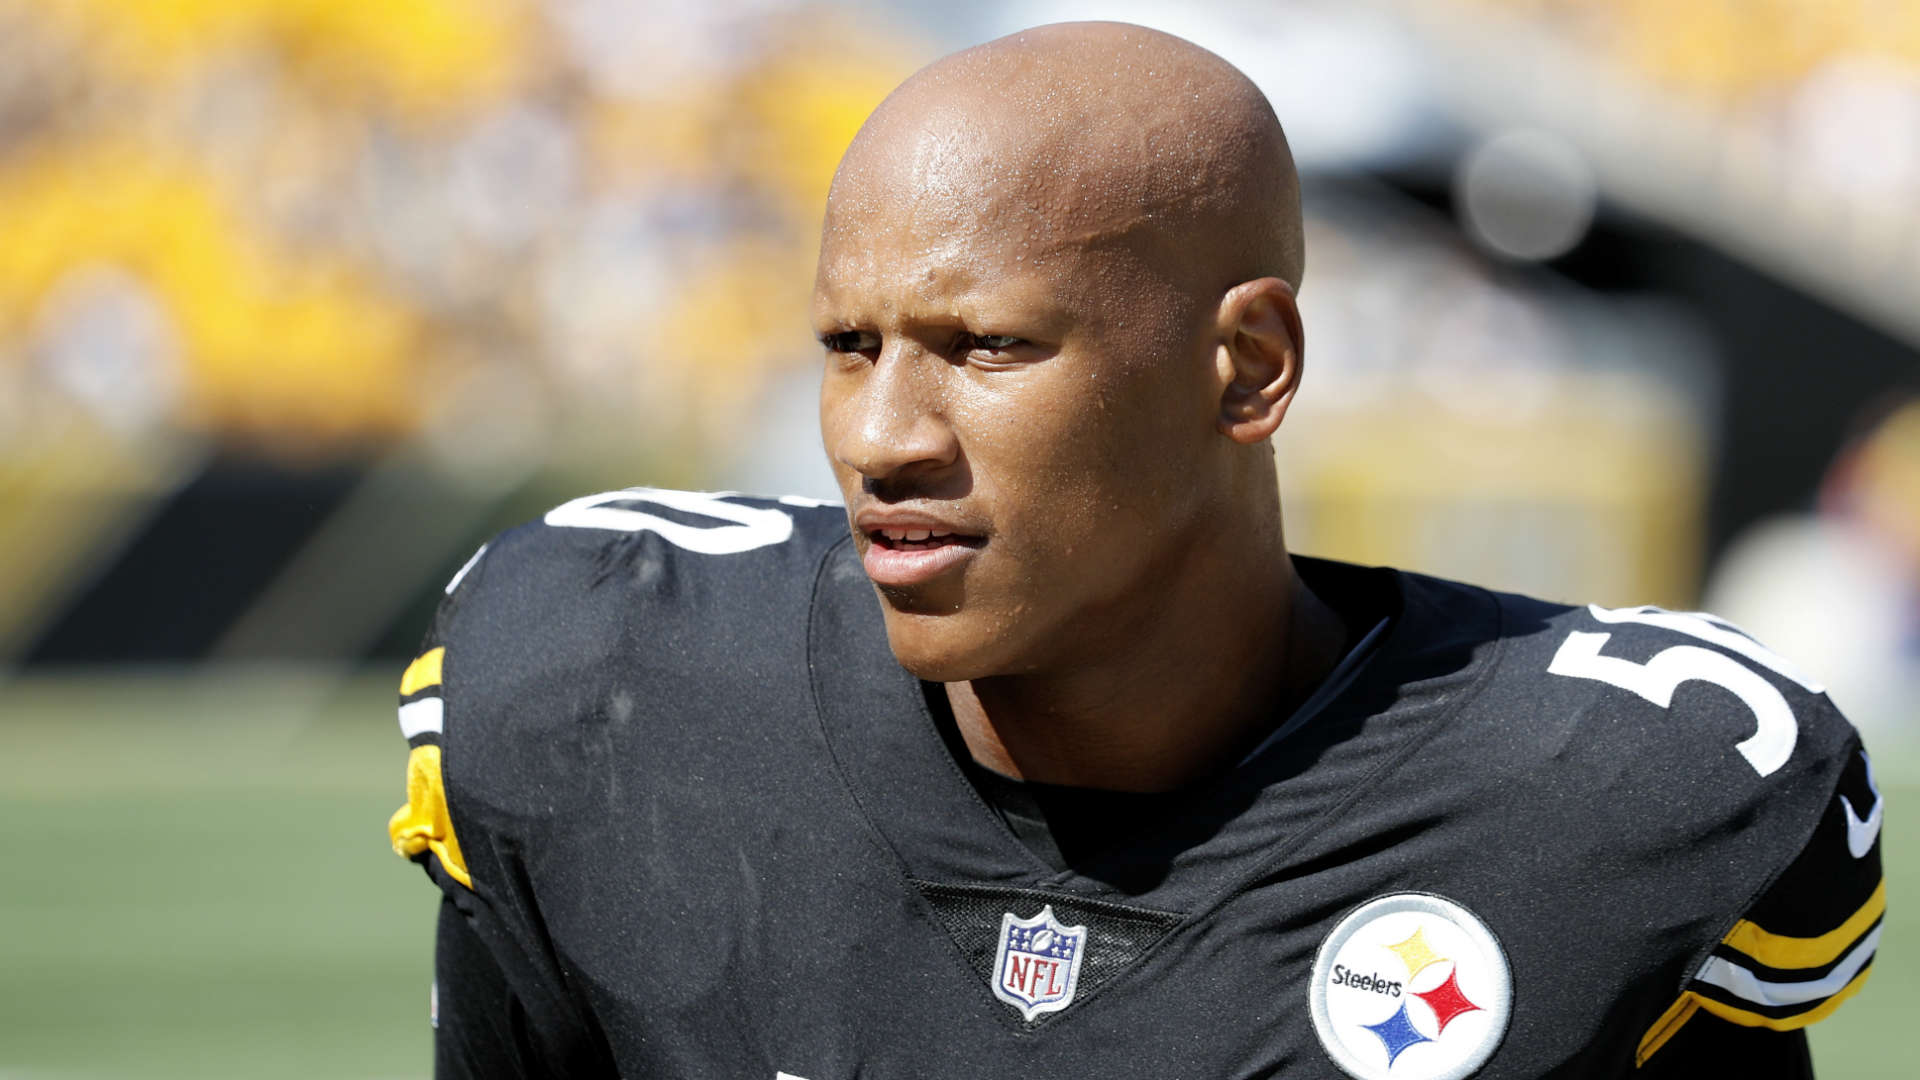 Ryan Shazier to have role with Steelers